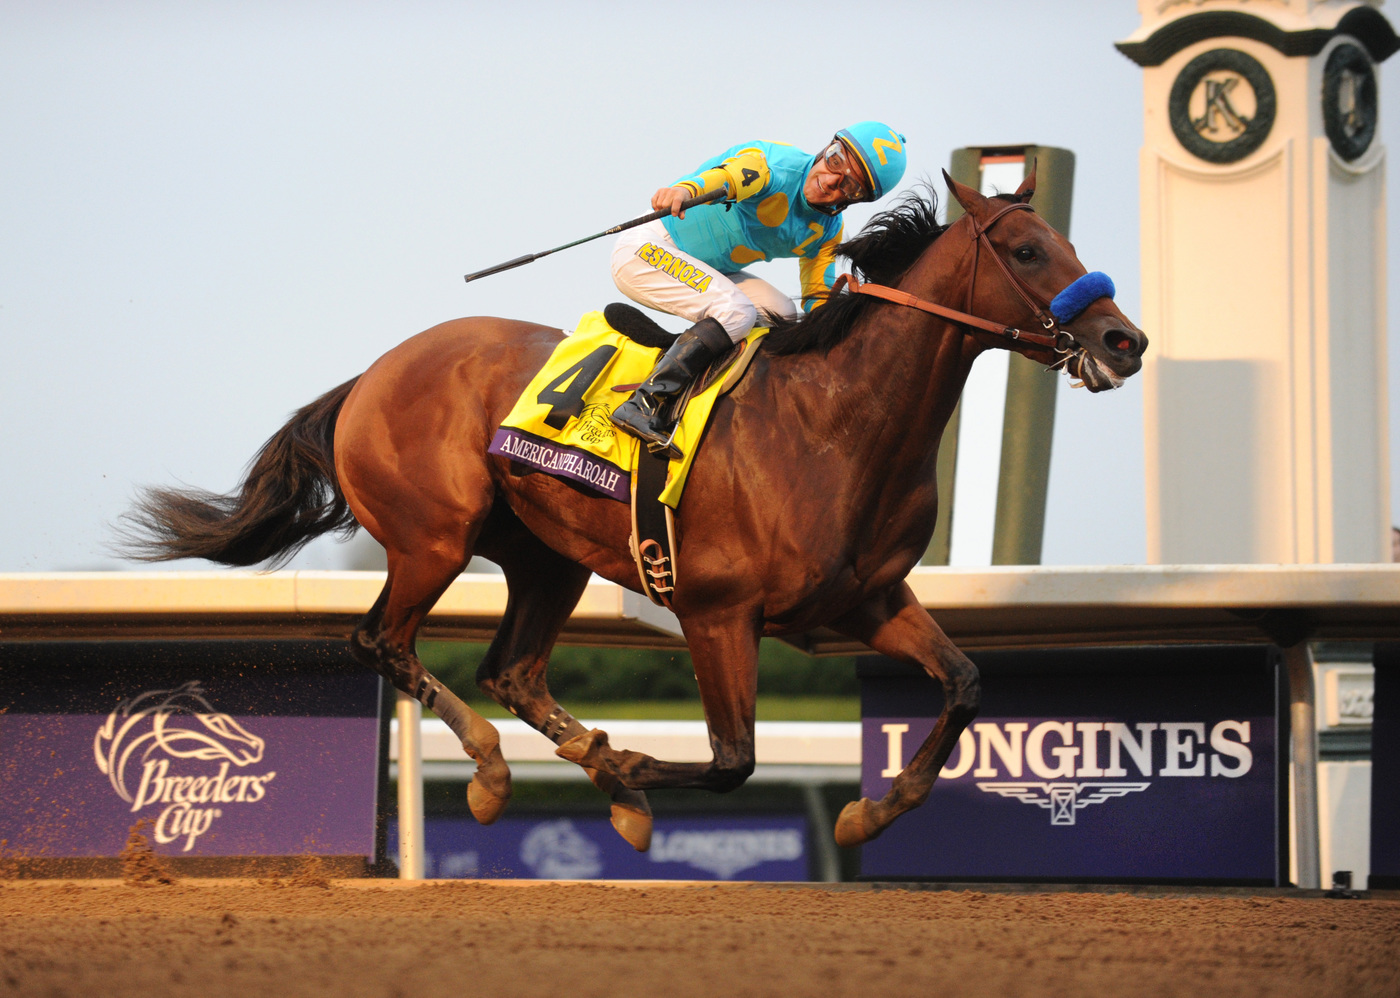 Longines Flat Racing Event: Longines times American Pharoah's historic victory in Breeders' Cup Classic 1